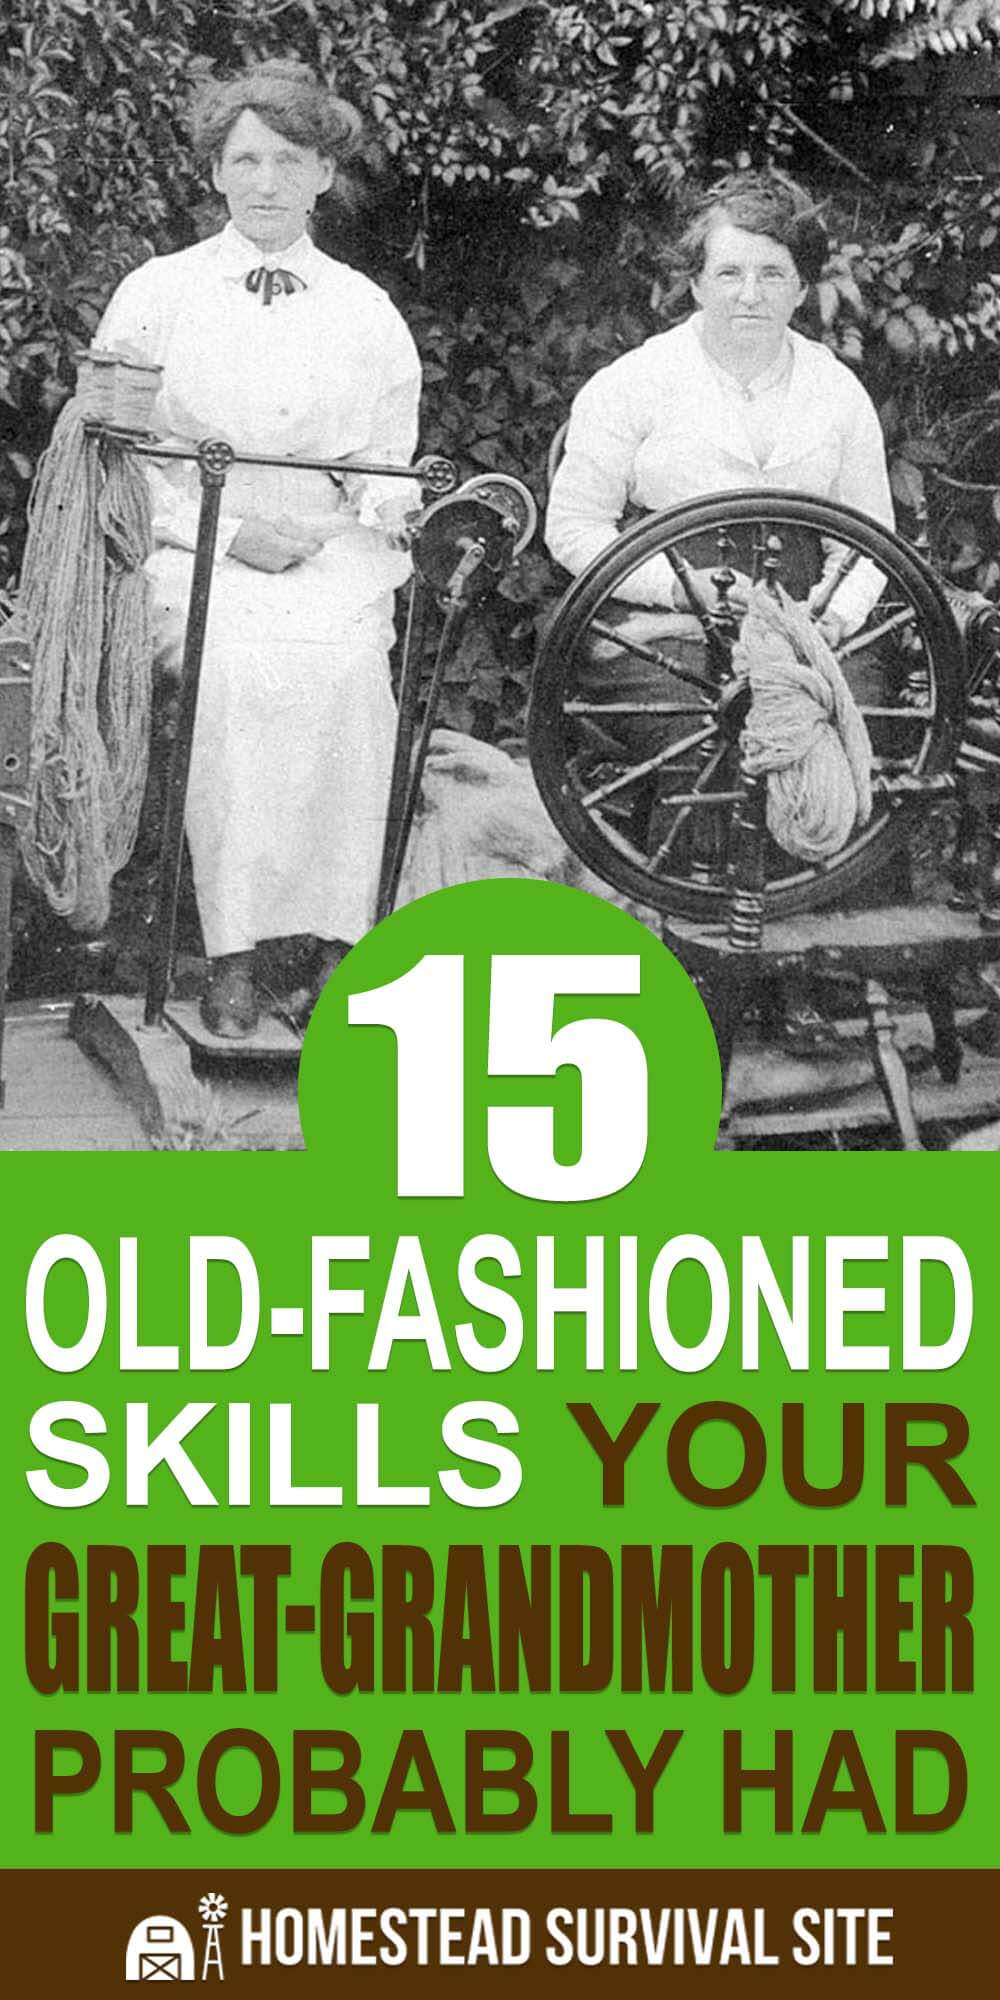 15 Old-Fashioned Skills Your Great-Grandmother Had